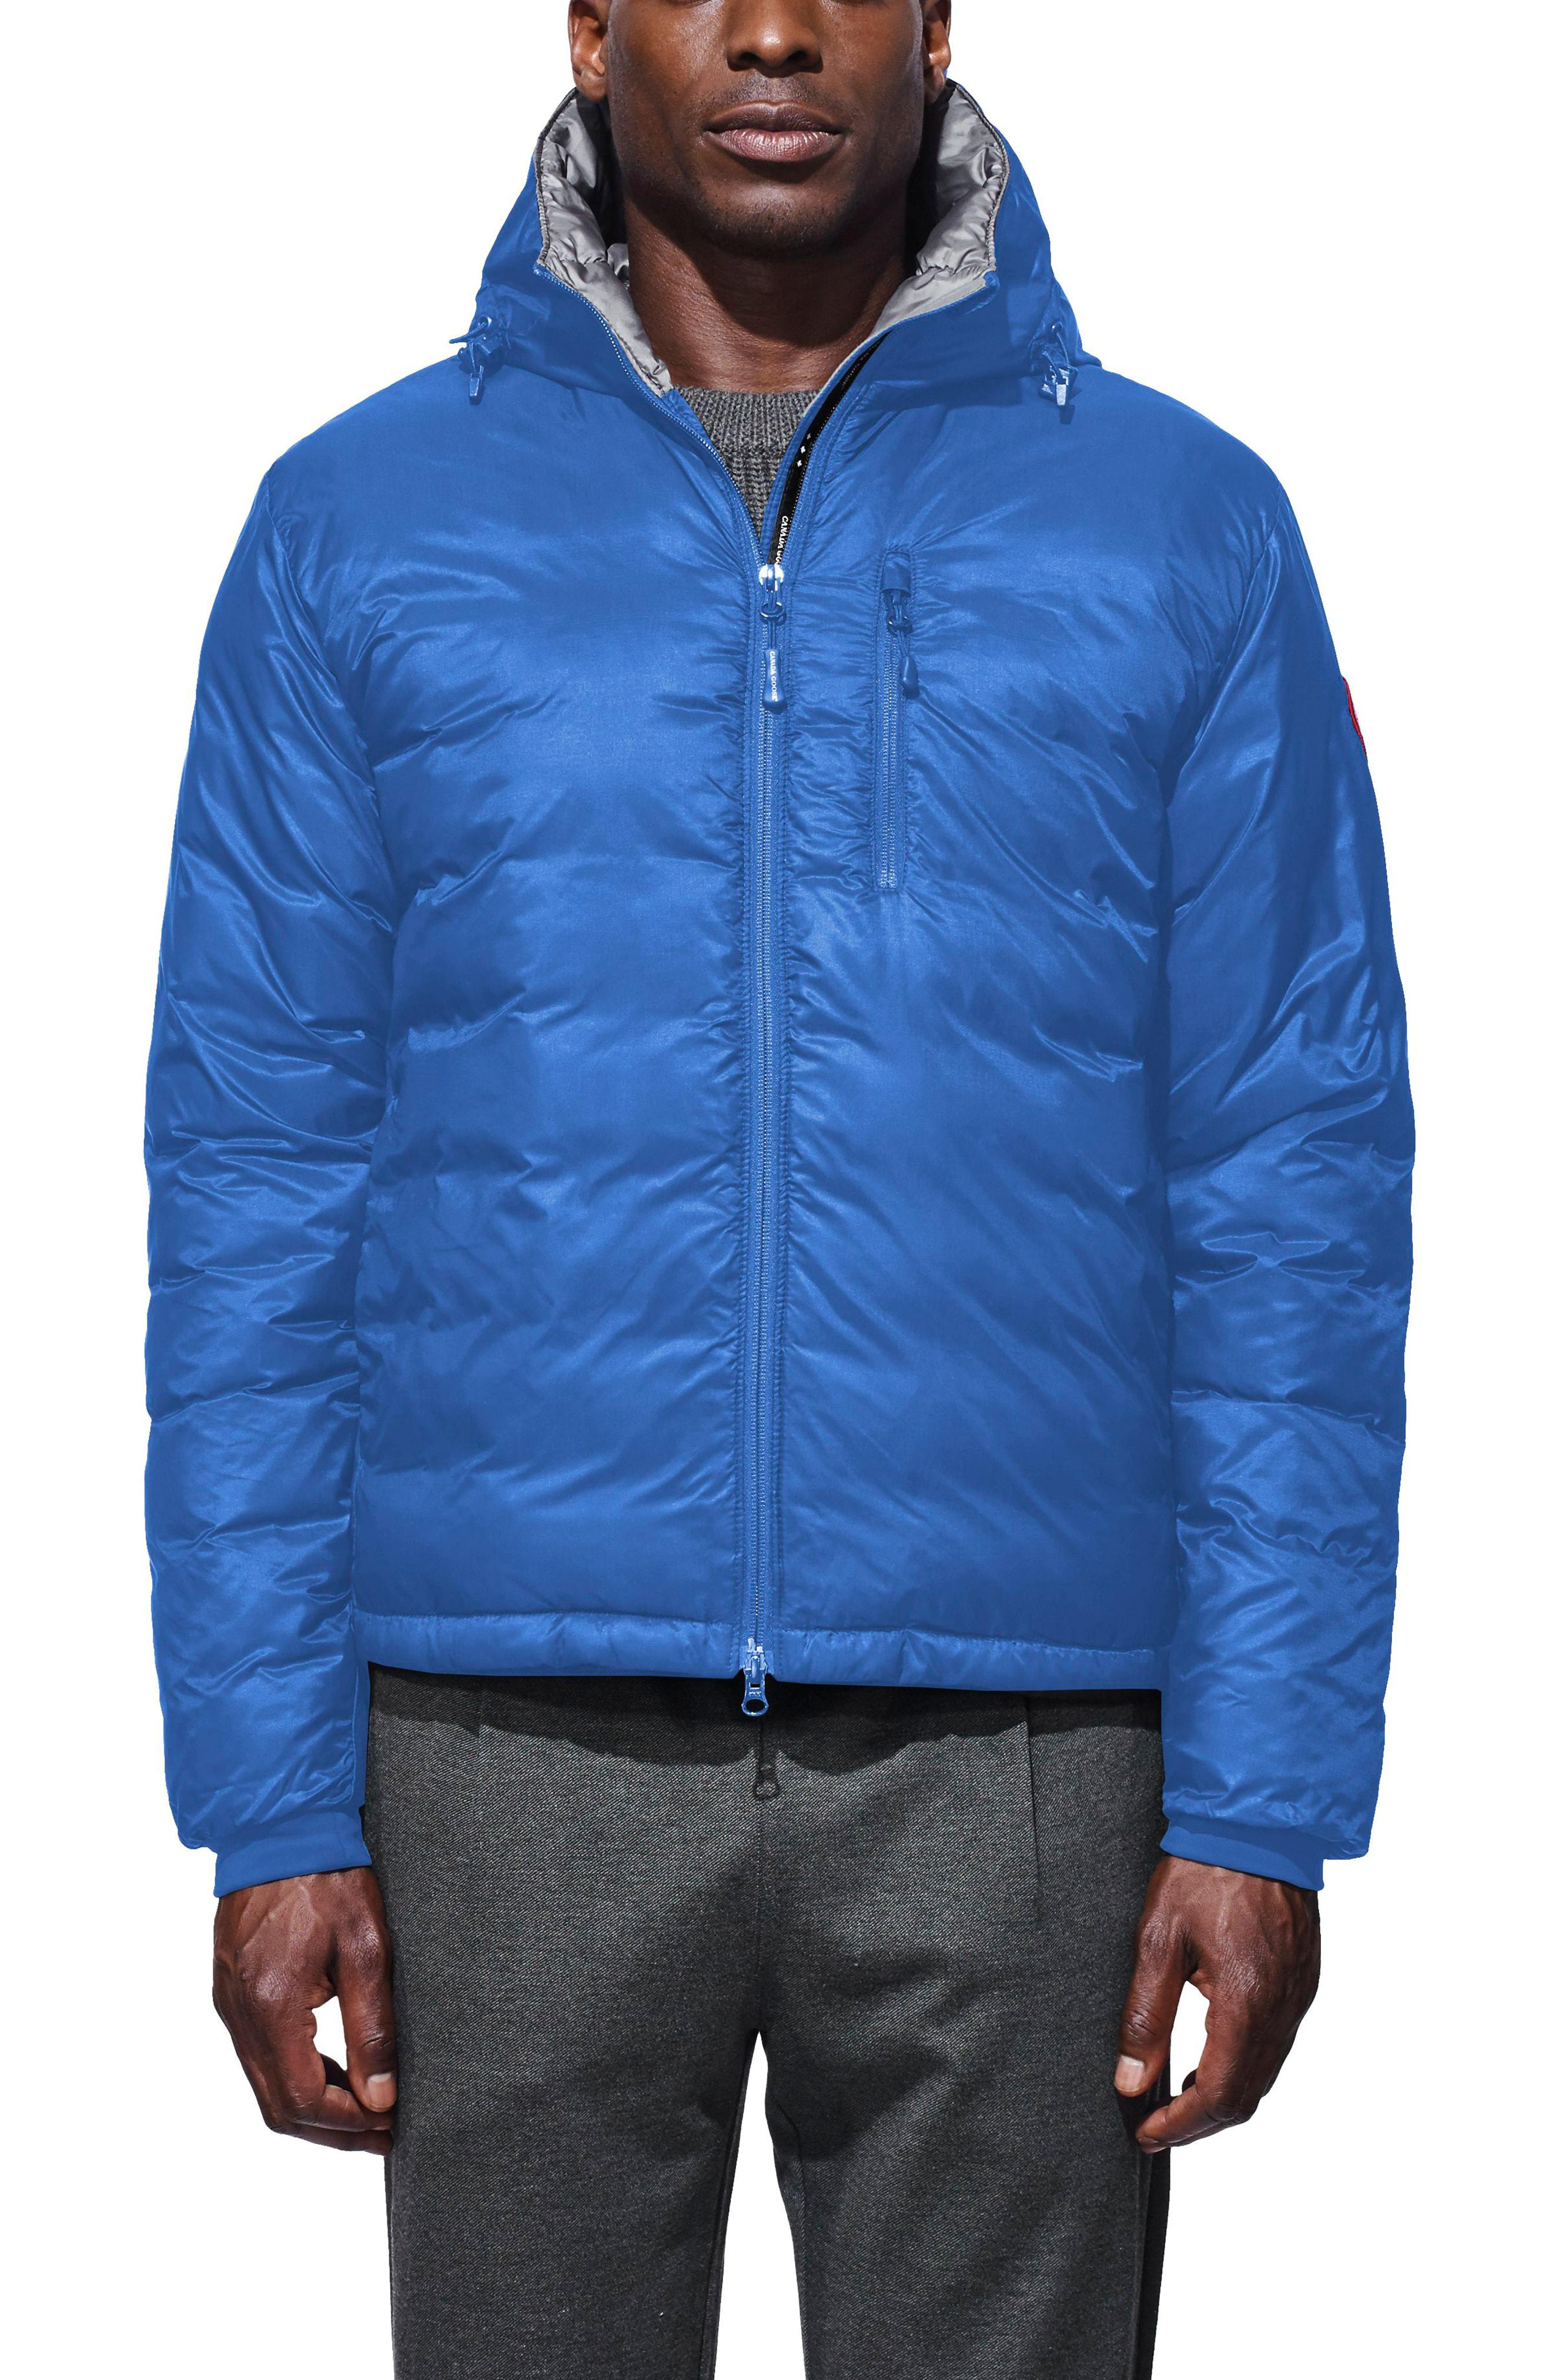 Canada Goose Pbi Lodge Slim Fit Packable Down Hooded